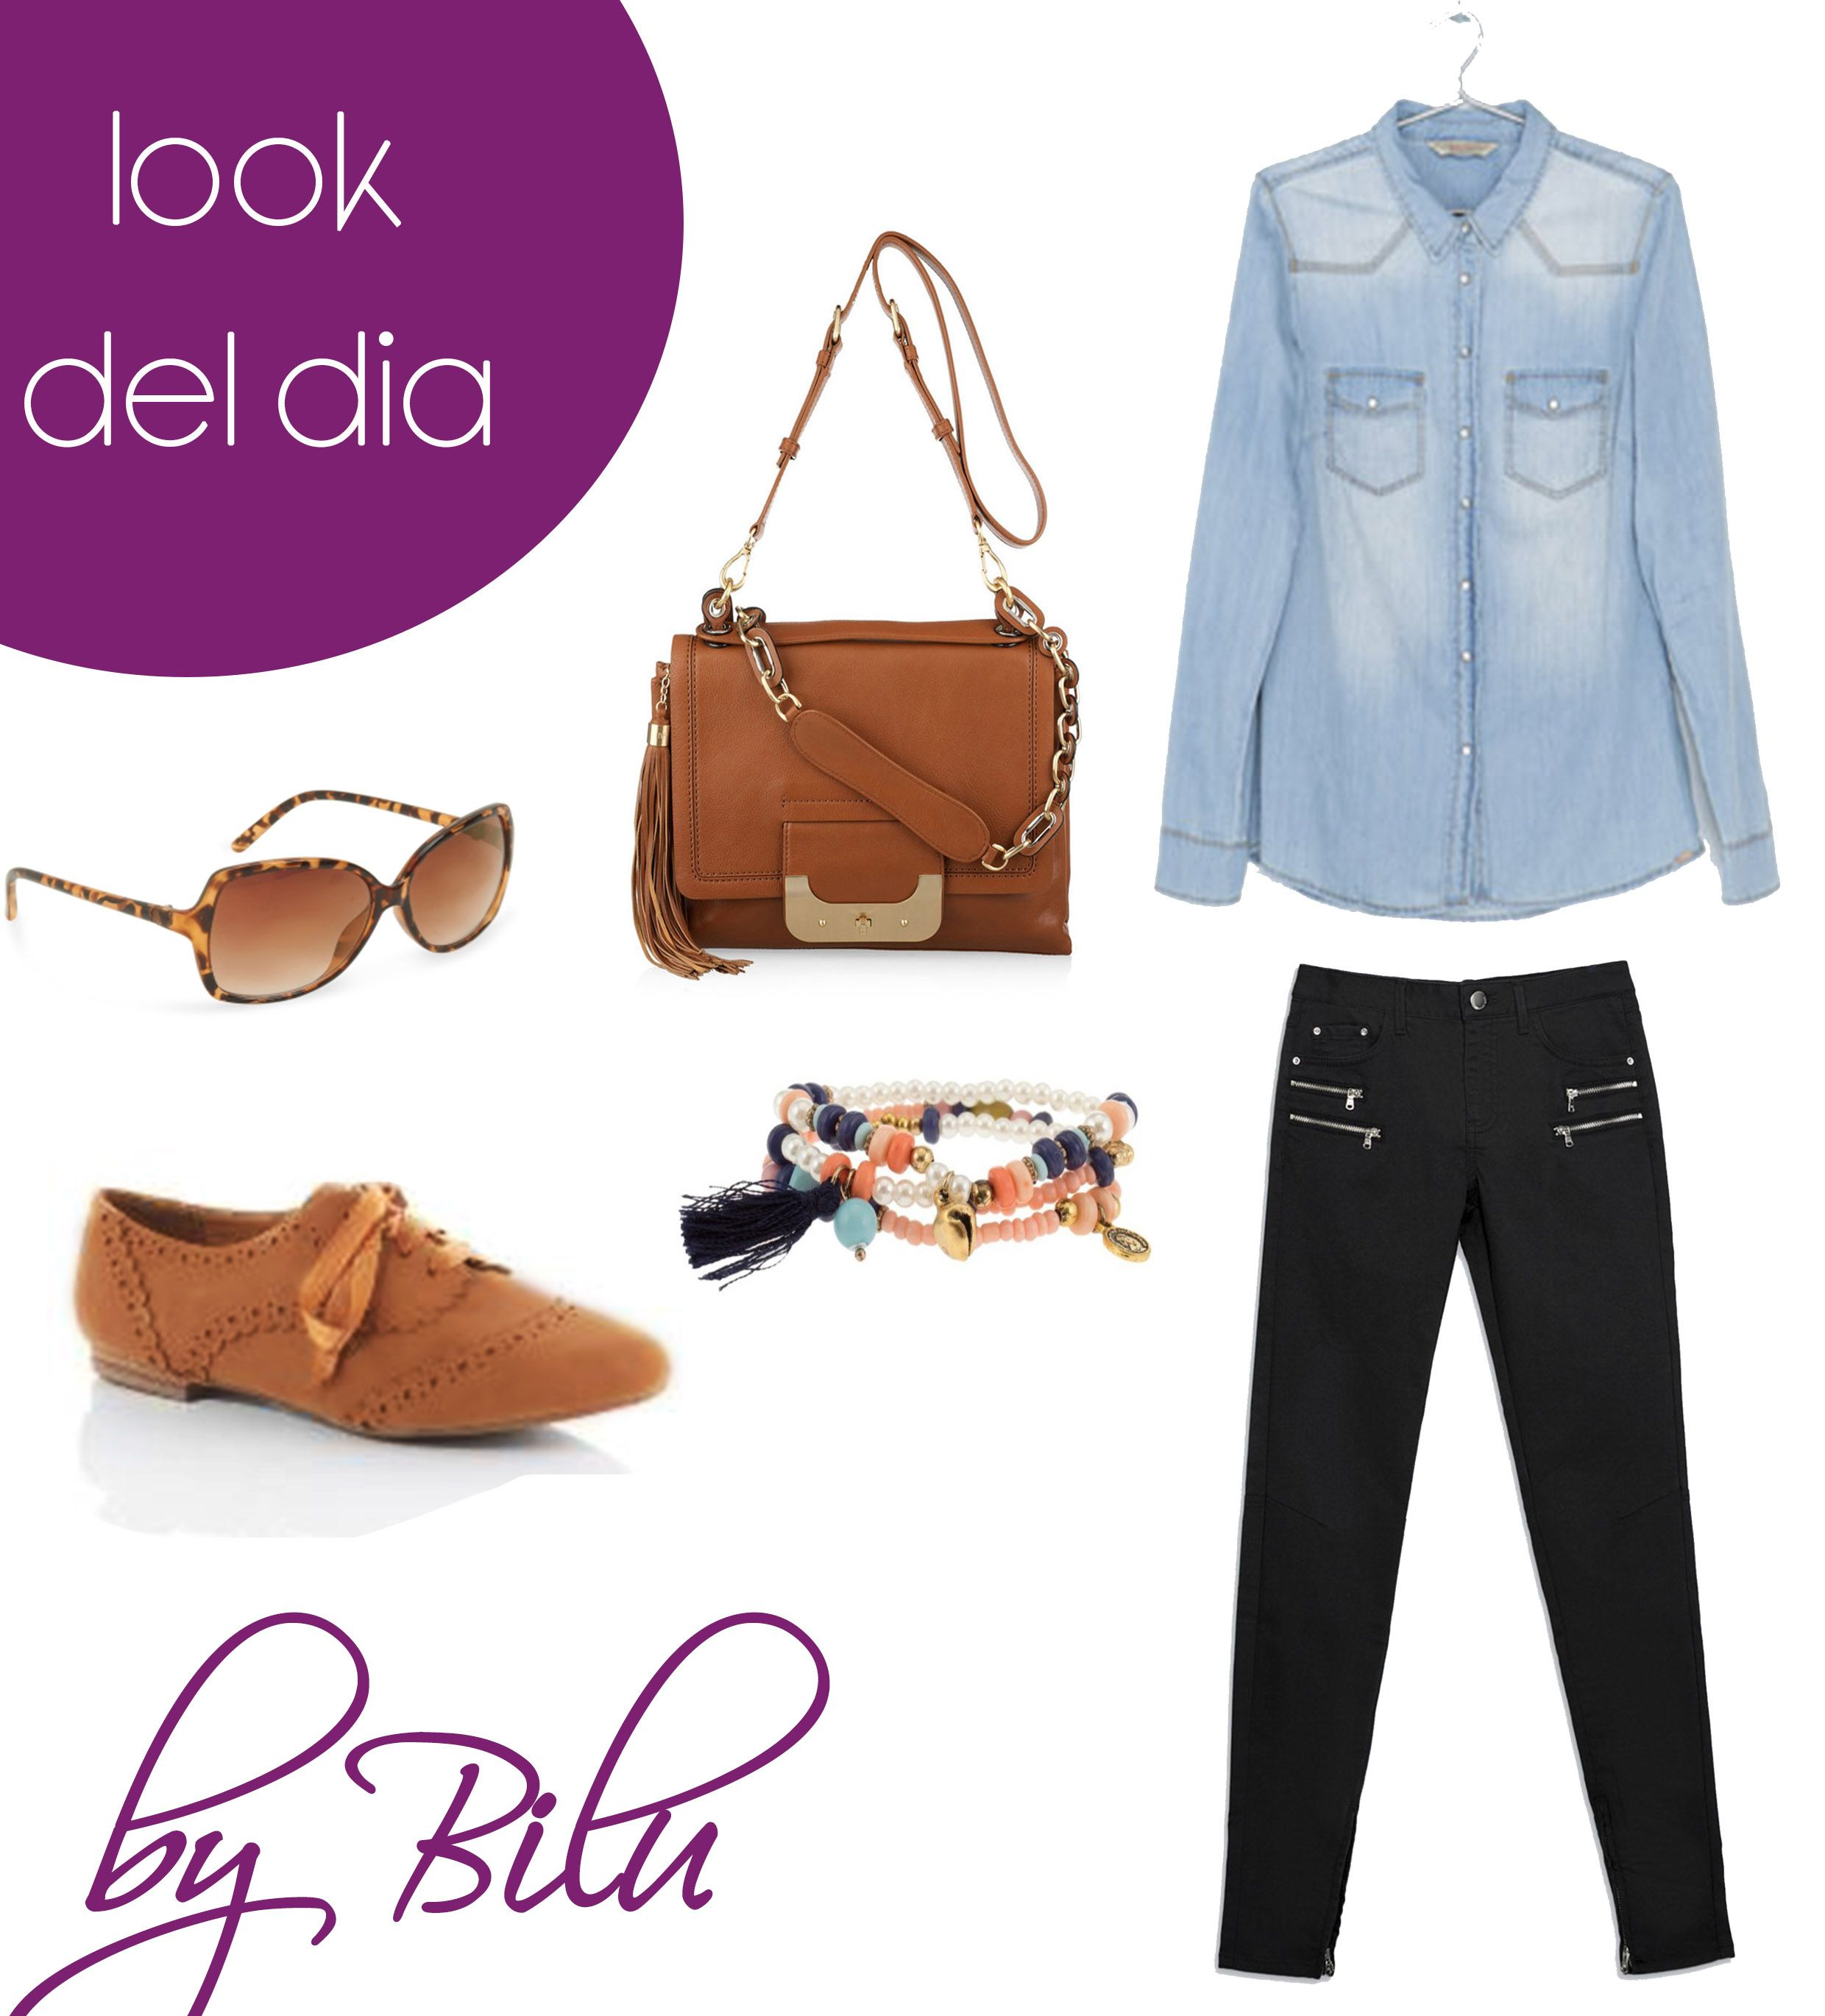 1000+ images about Moda mujer Honuras on Pinterest